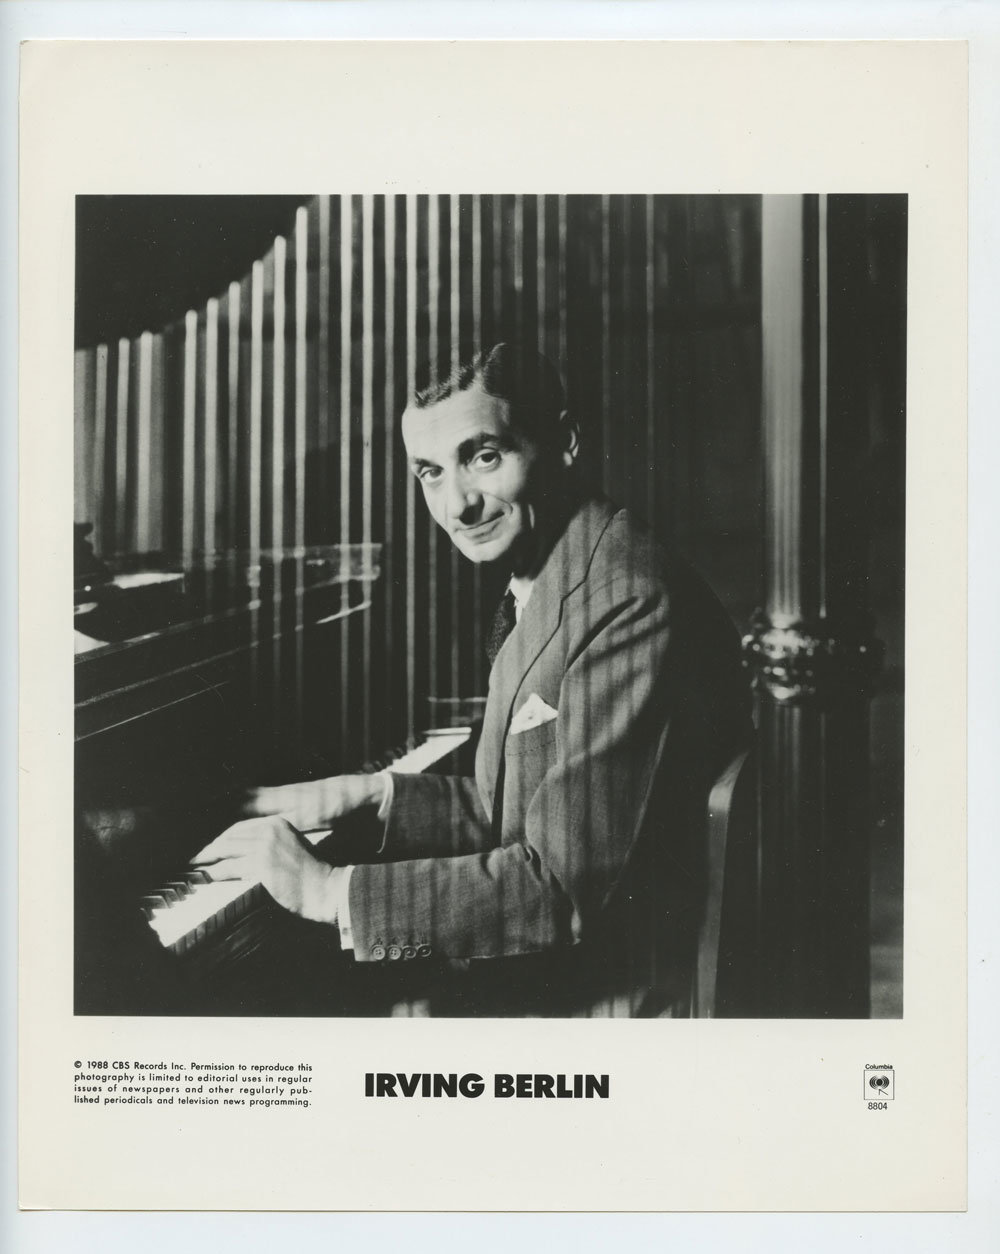 Irving Berlin Photo 1988 Publicity Promo CBS Records